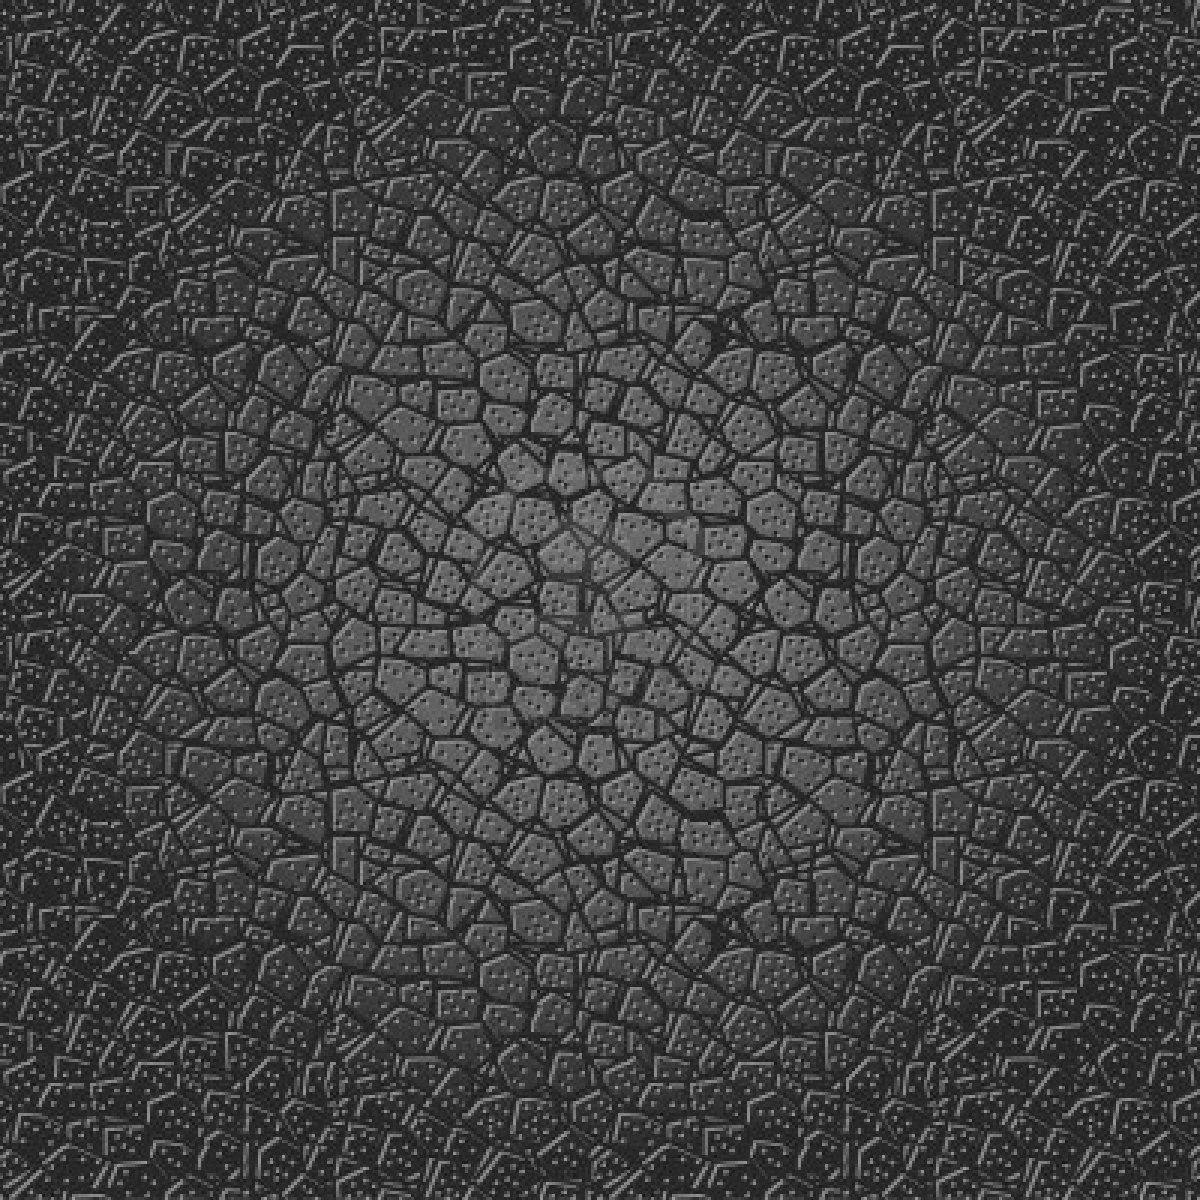 White leather texture artbeta references textures doddy